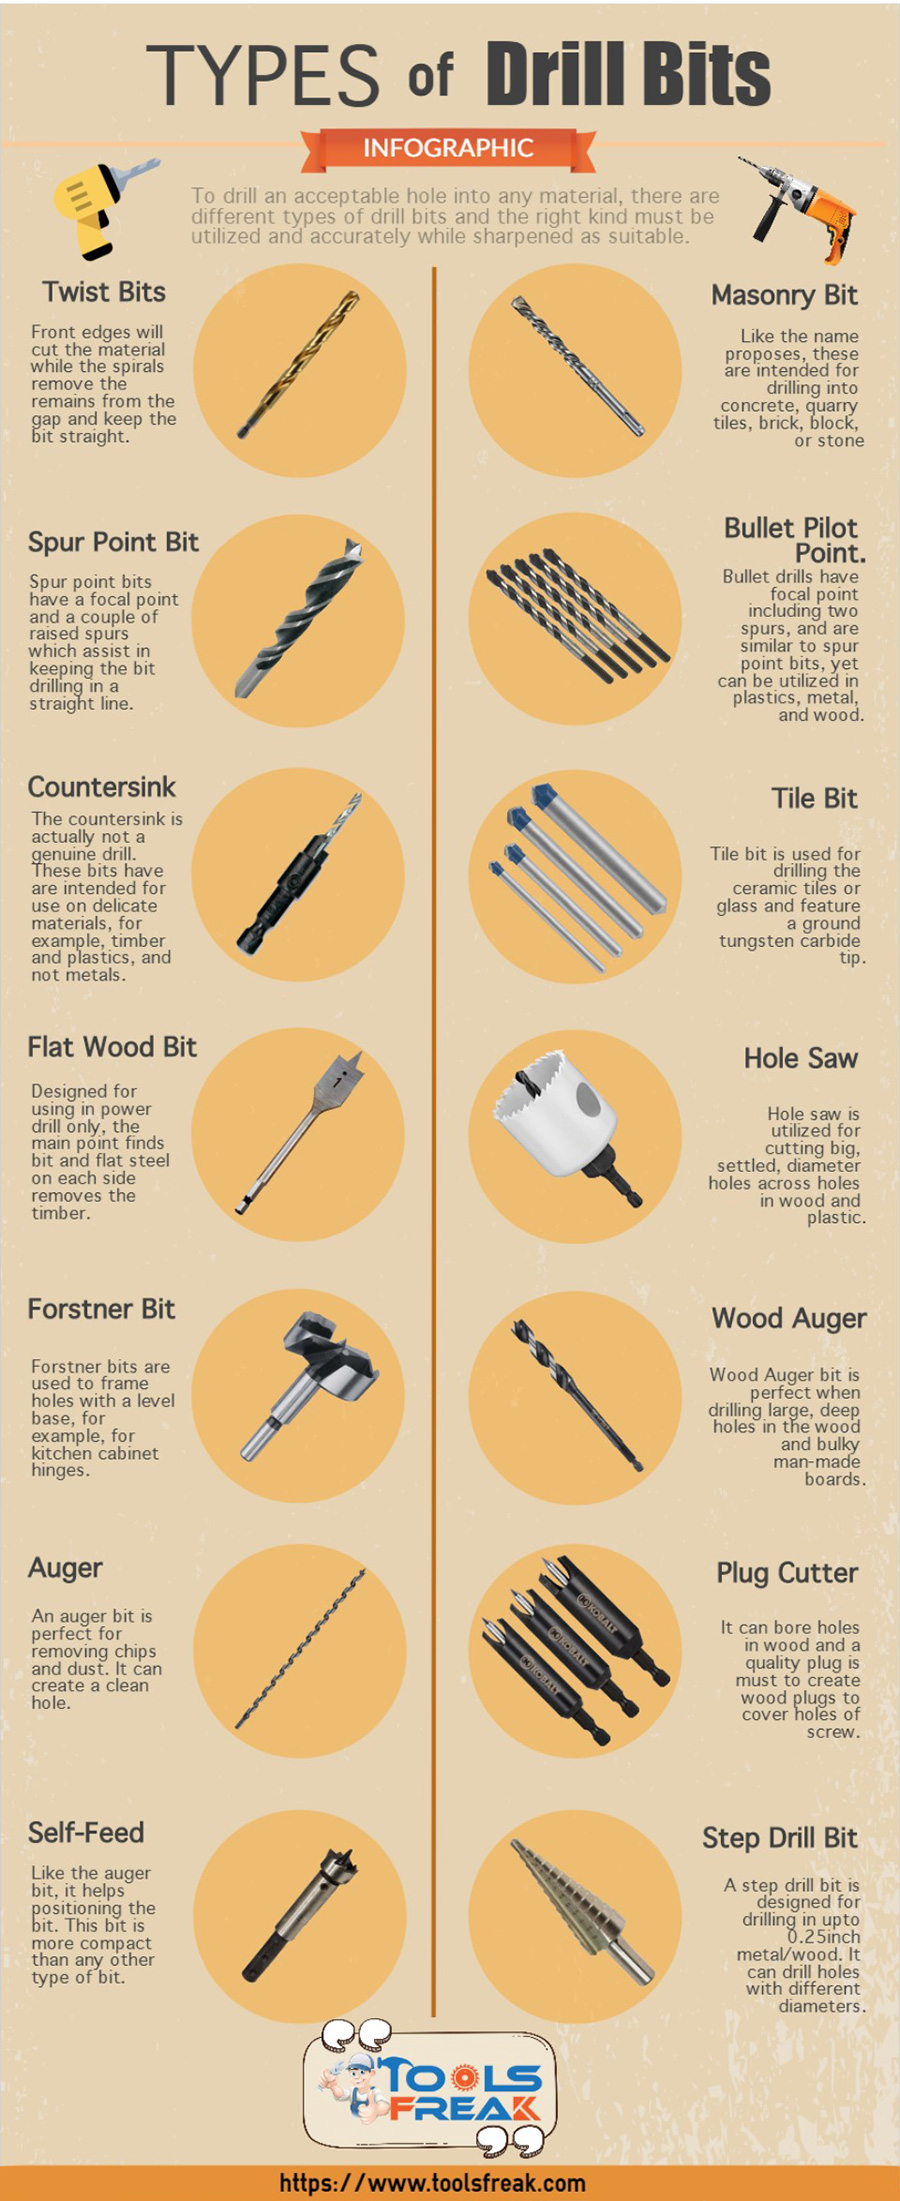 Types of Drill Bits and Their Uses [Infographic] - Tools Freak